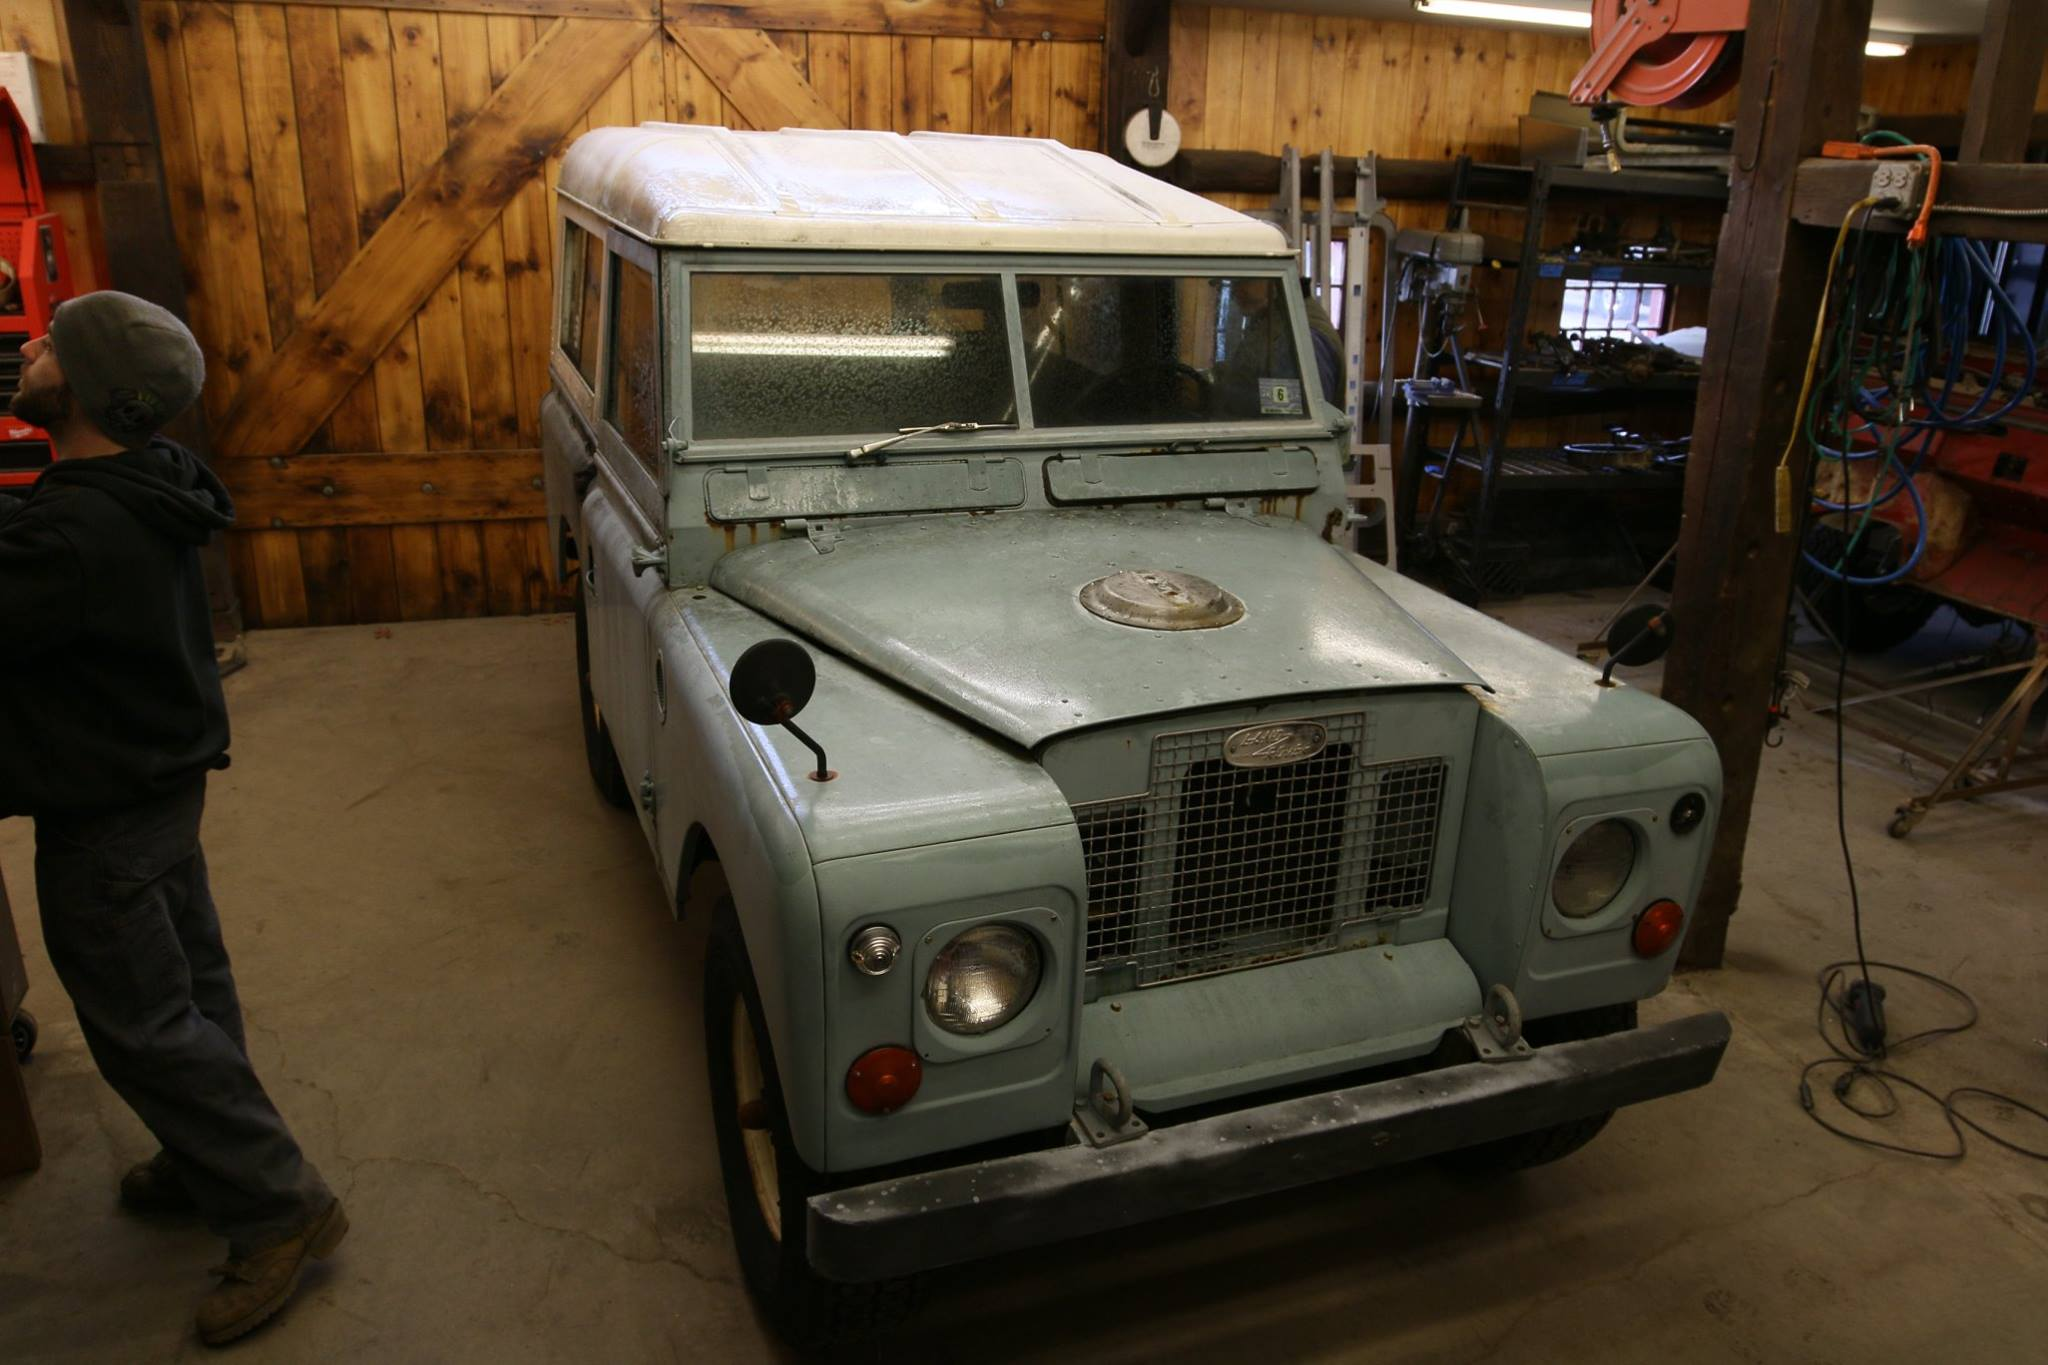 1969 Land Rover Series IIa Marine Blue before restoration.